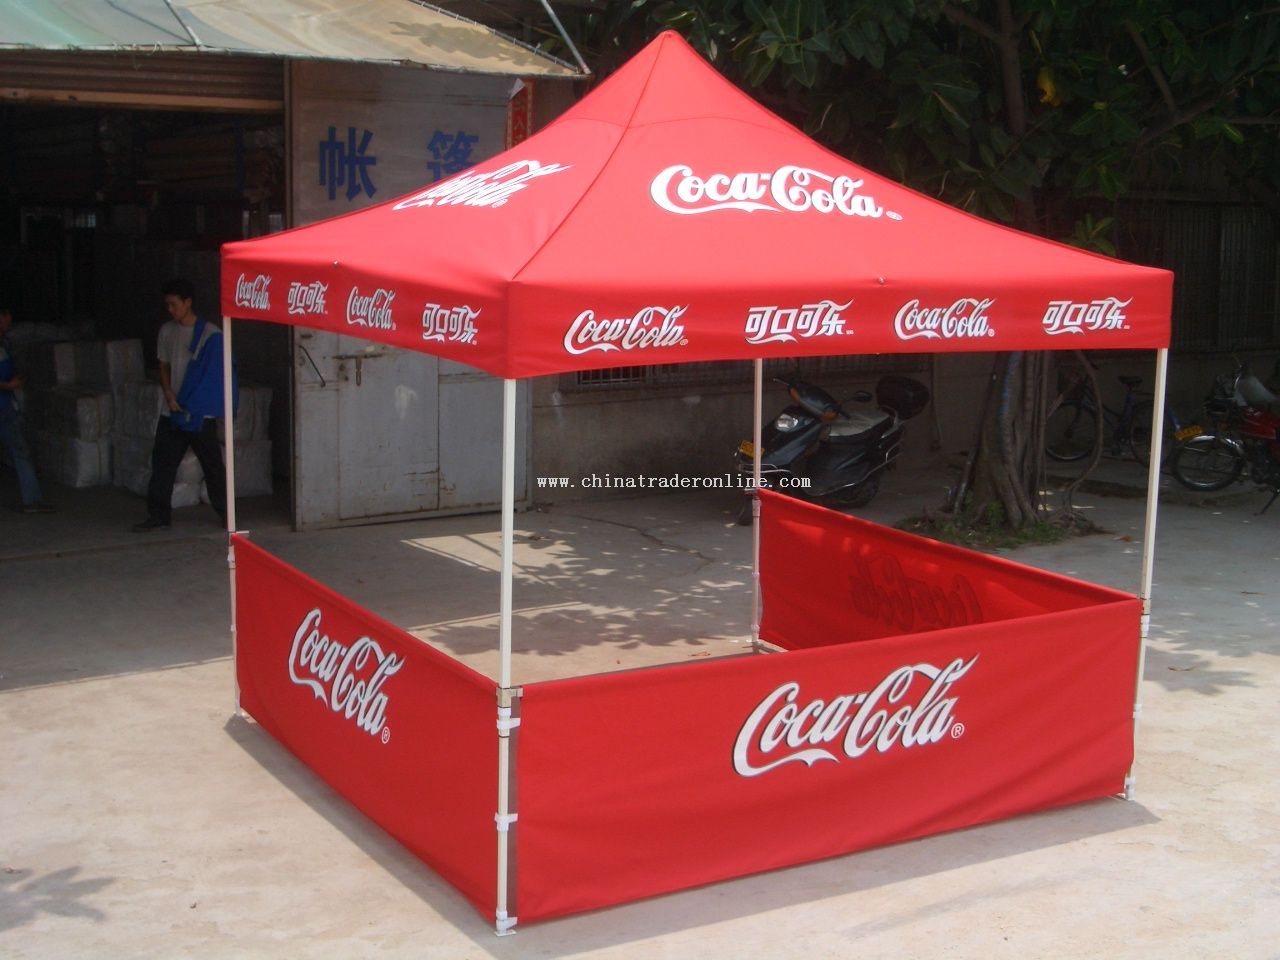 Folding Tent & wholesale Folding Tent-buy discount Folding Tent made in China-CTO9551